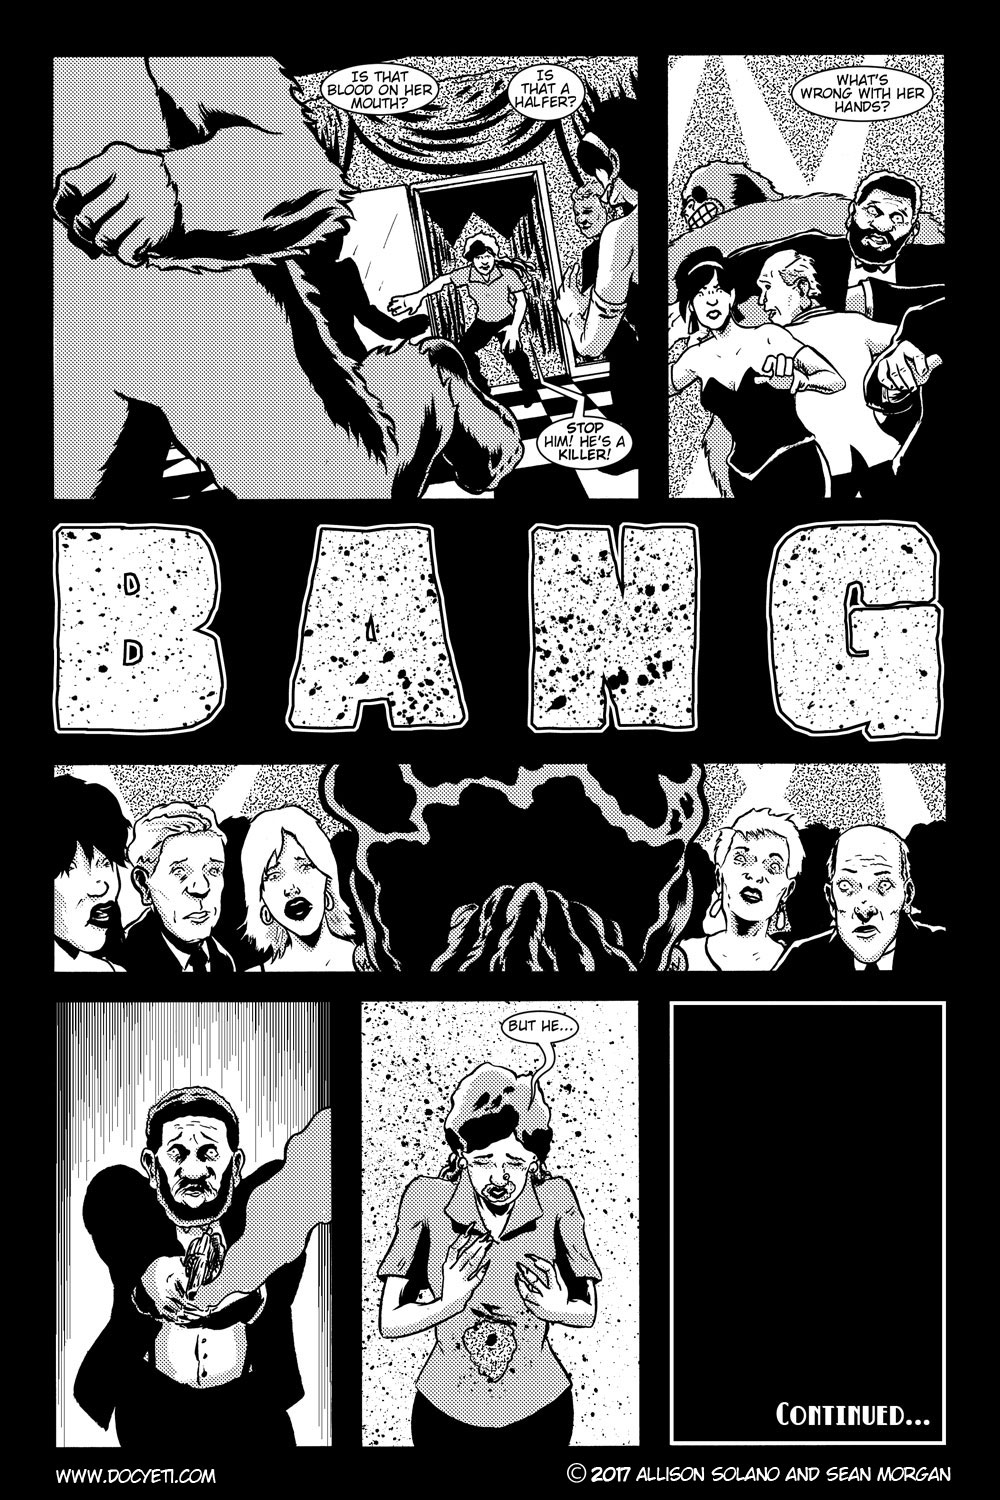 This Yeti for Hire! or the Yeti with the Lace Kerchief! Issue 2 pg.22